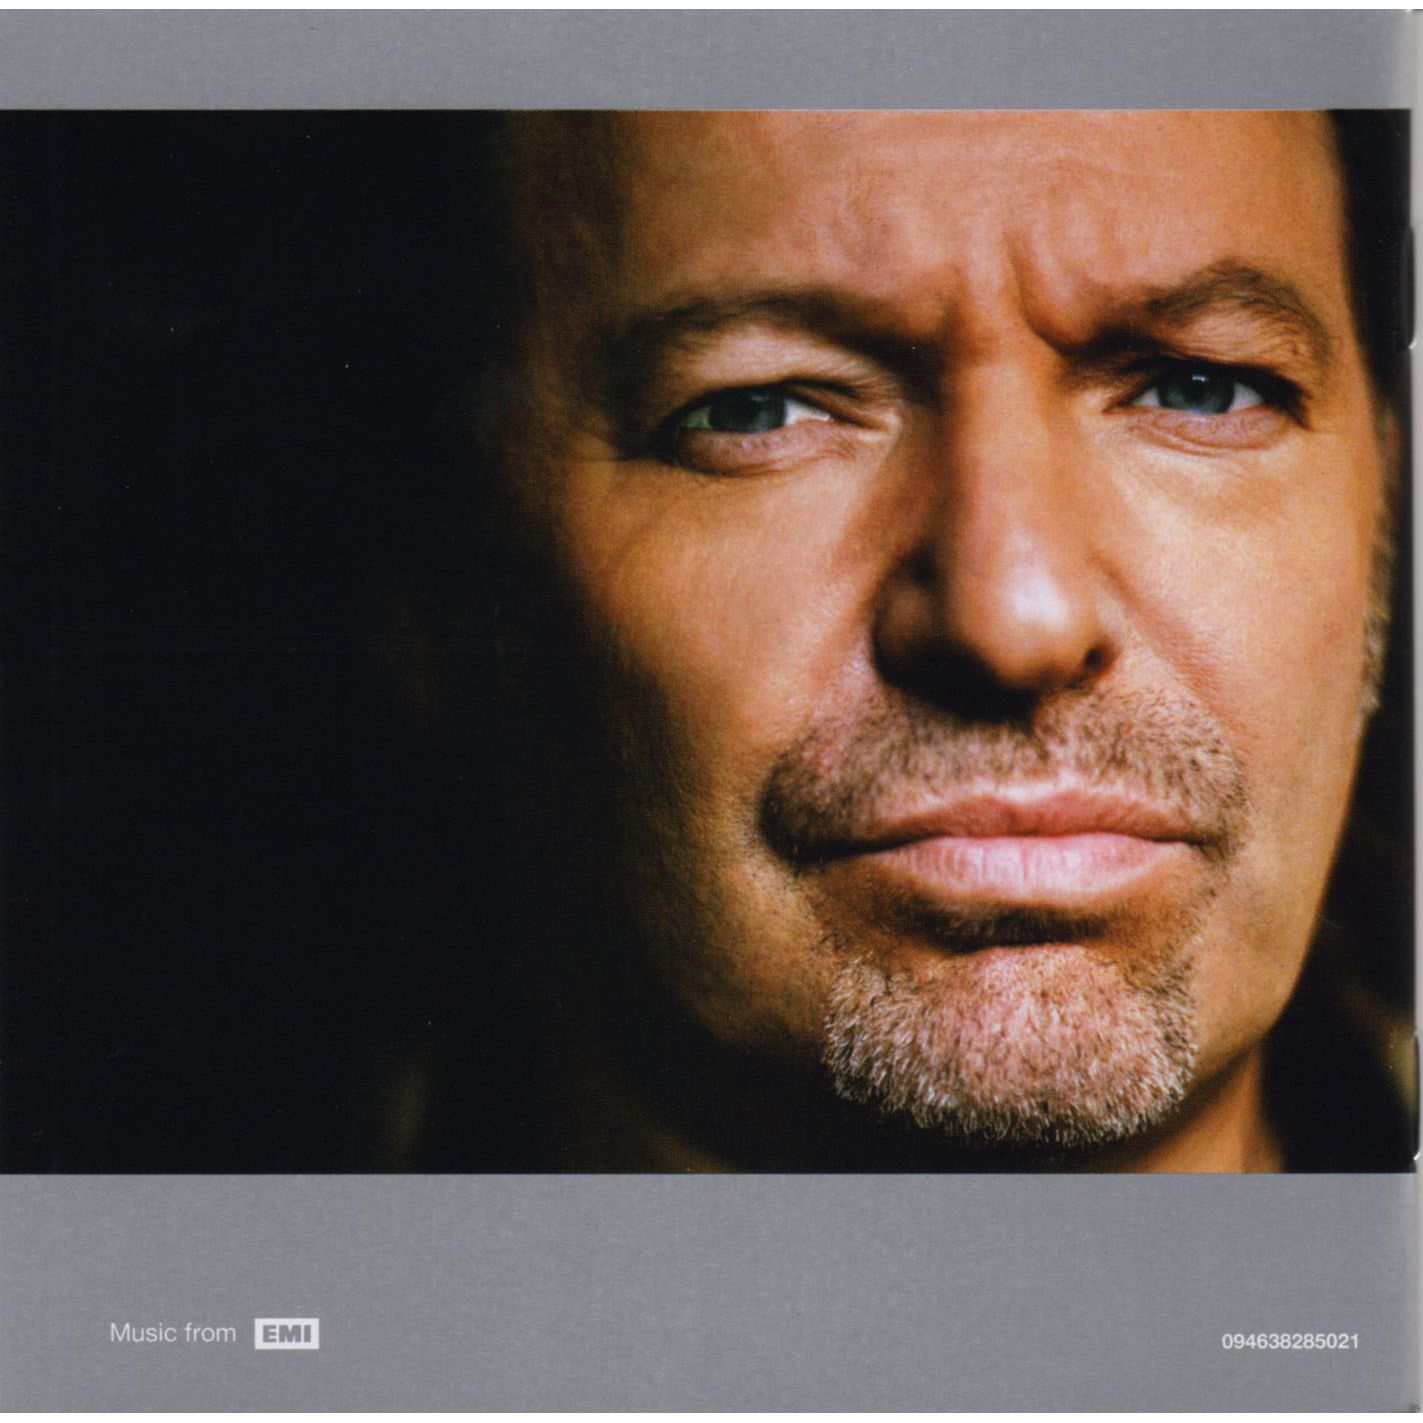 Vasco Rossi 2014 Album The Platinum Collection Cd1 Vasco Rossi Mp3 Buy Full Tracklist